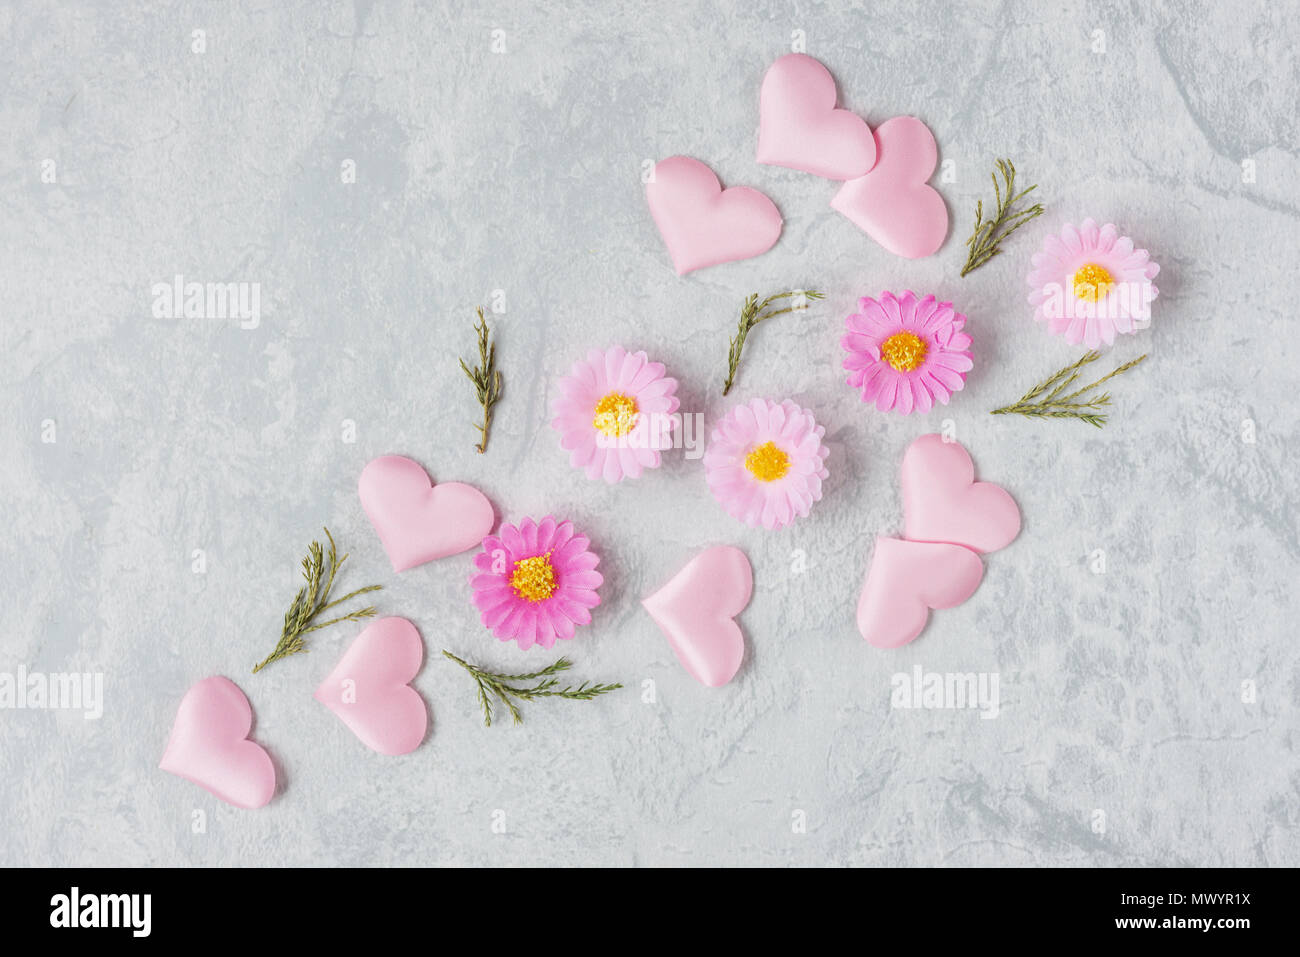 Spring Gentle Romantic Composition With Flowers And Pink Silk Hearts